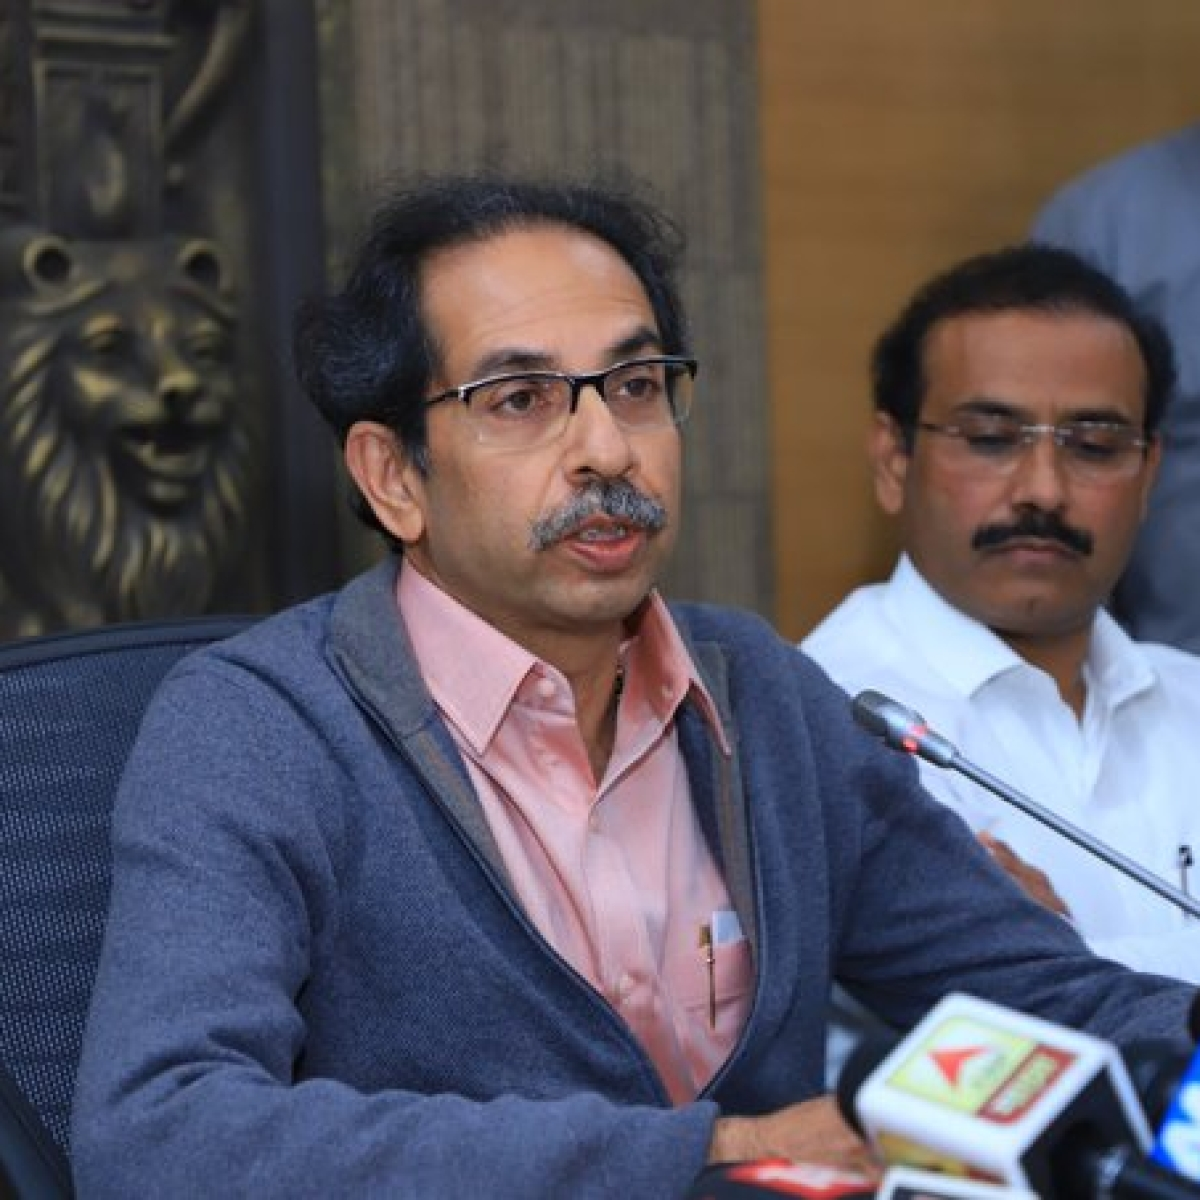 'Stay at home, cooperate with the state government during the lockdown': Maha CM Uddhav Thackeray